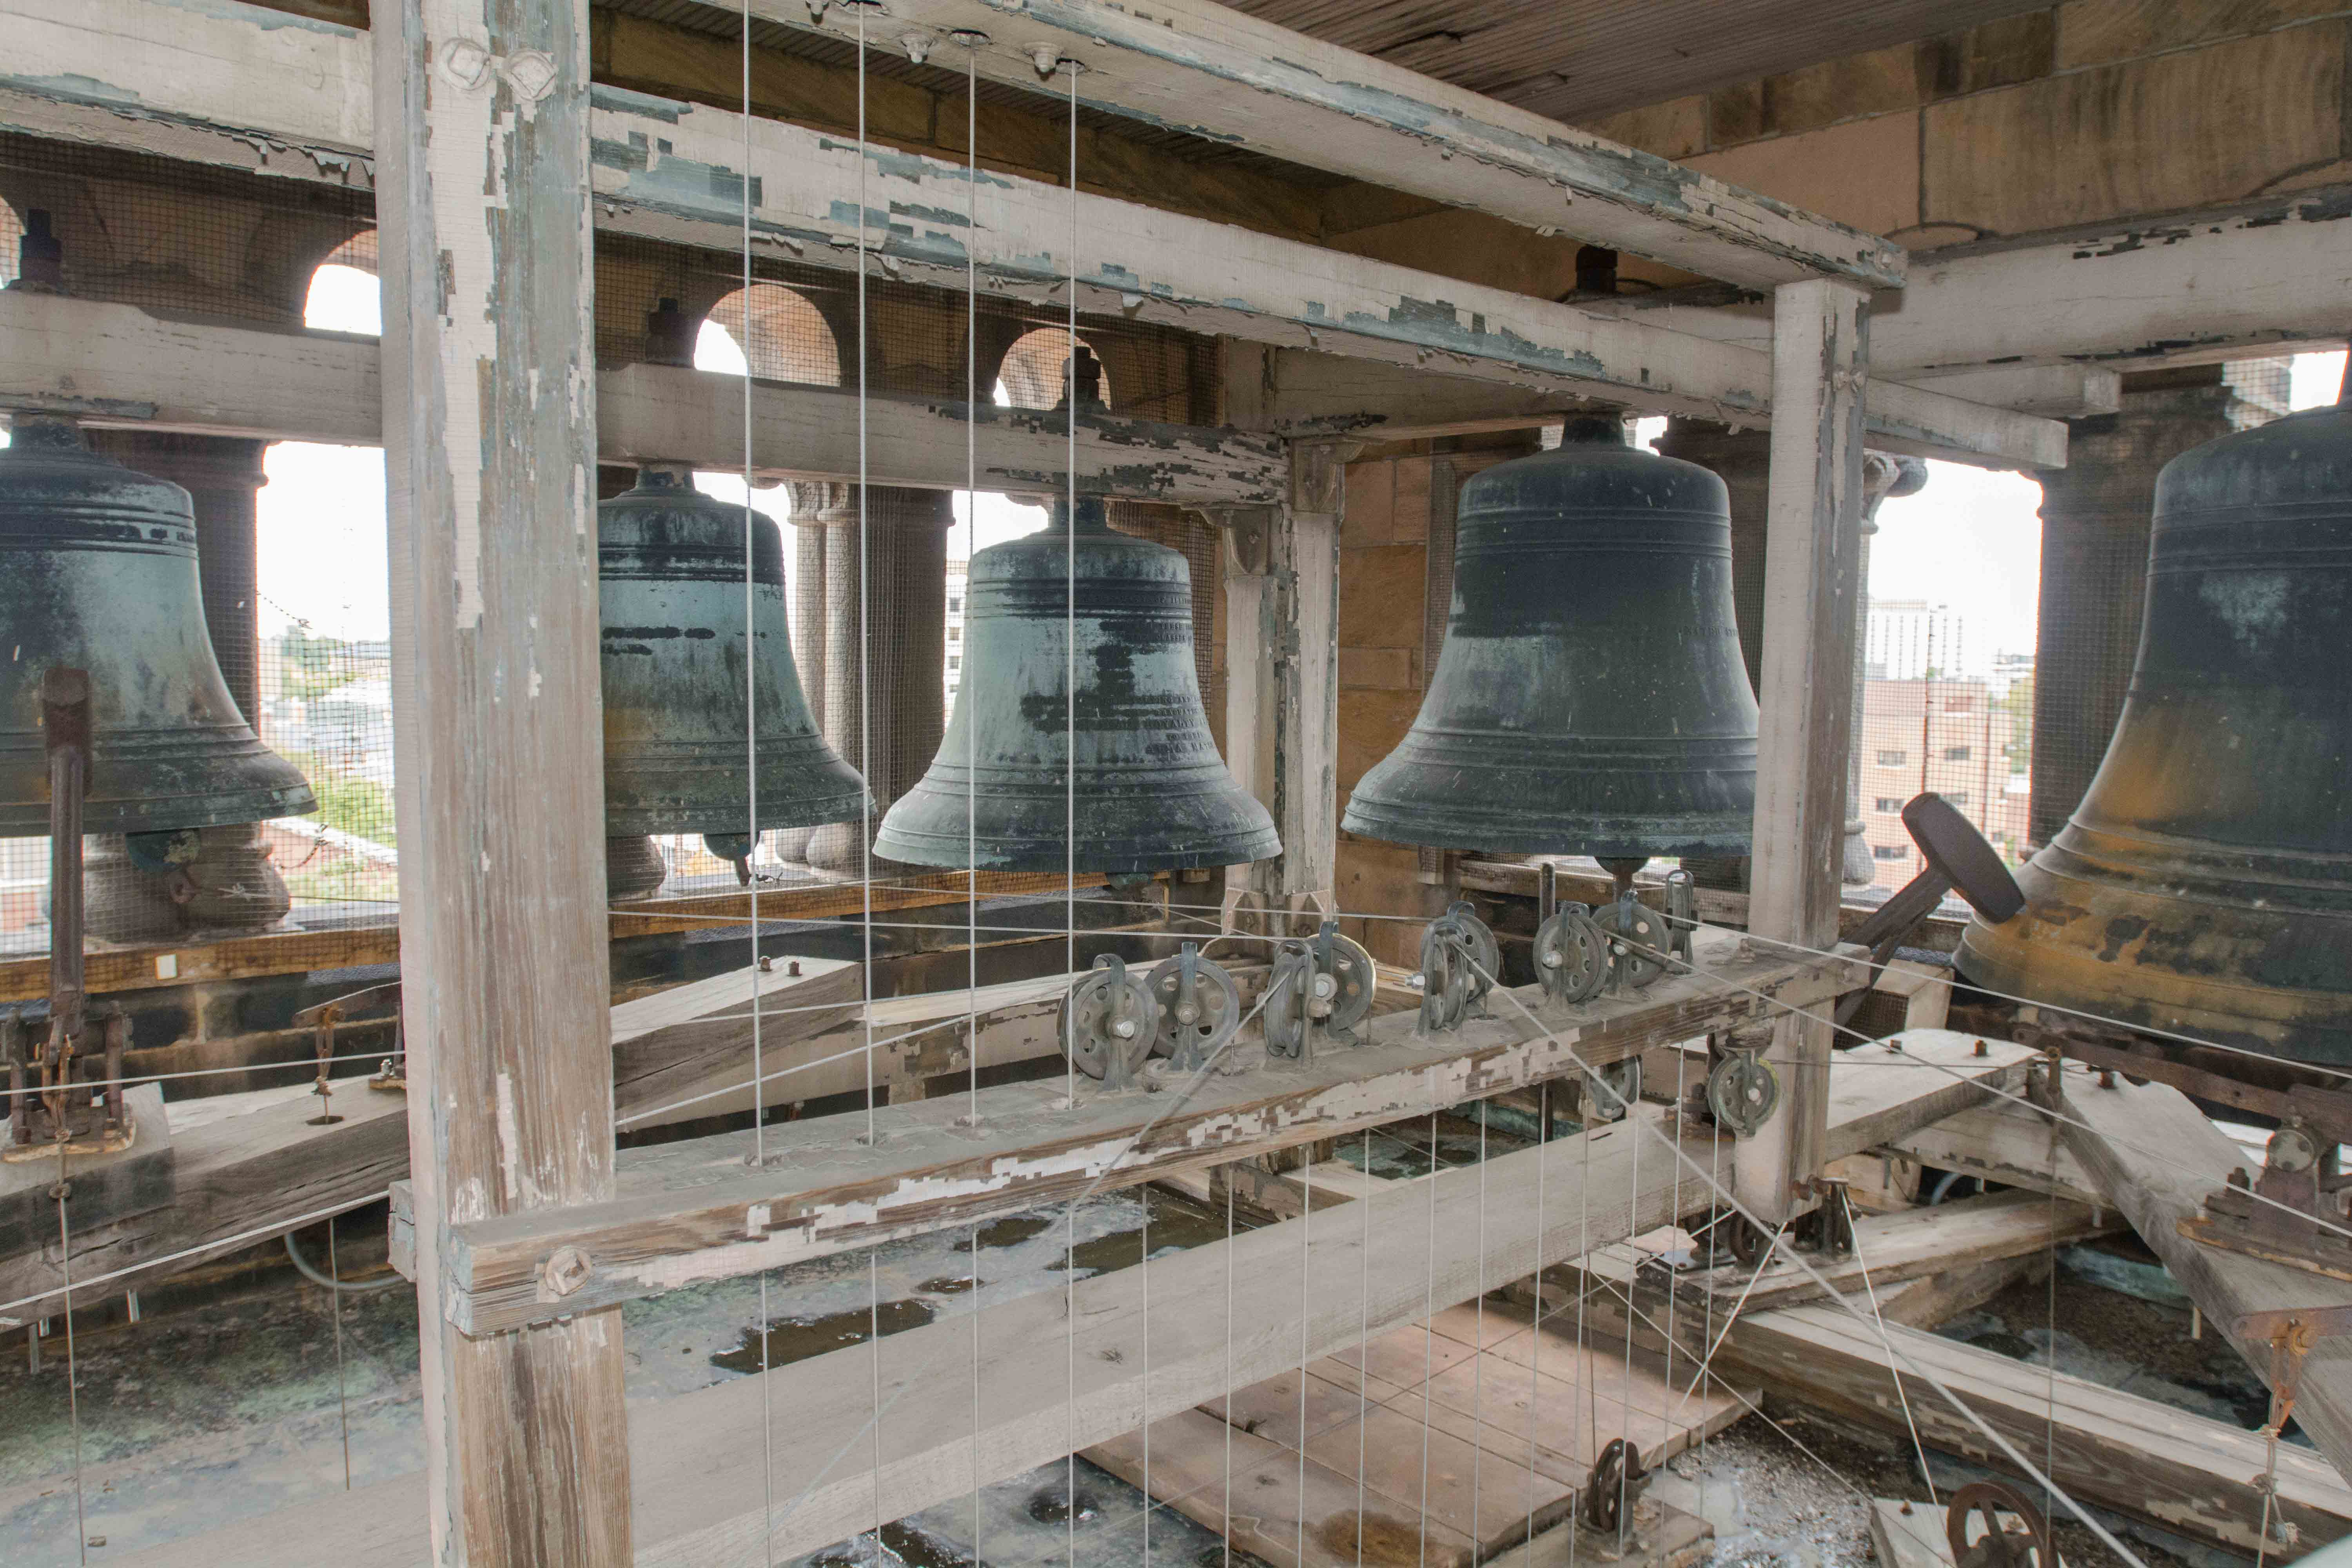 A view of the chime in the Altgeld Hall bell tower. The chime will play